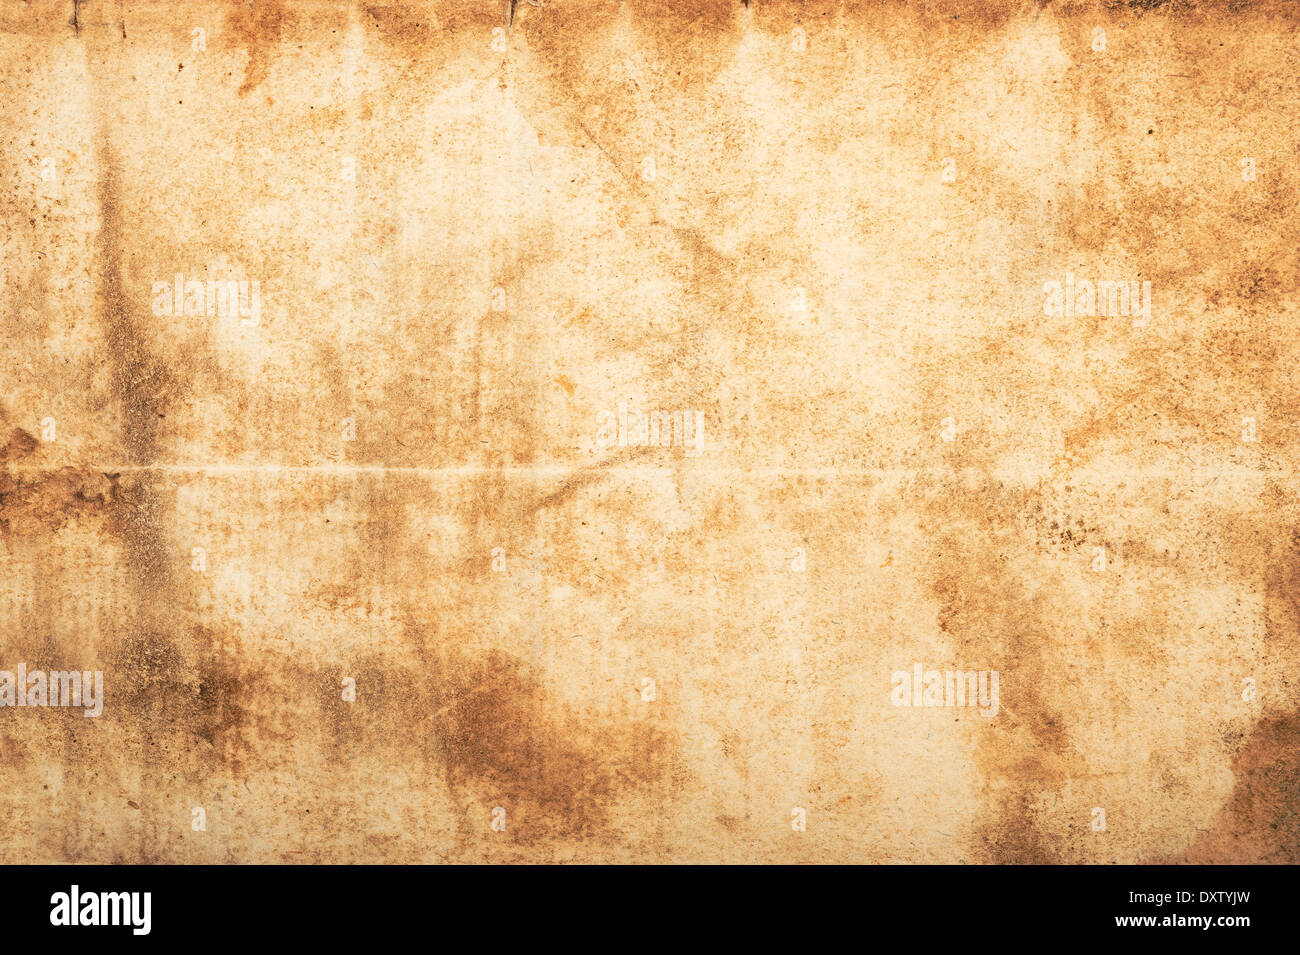 Dirty old parchment with spots and stripes  - Stock Image